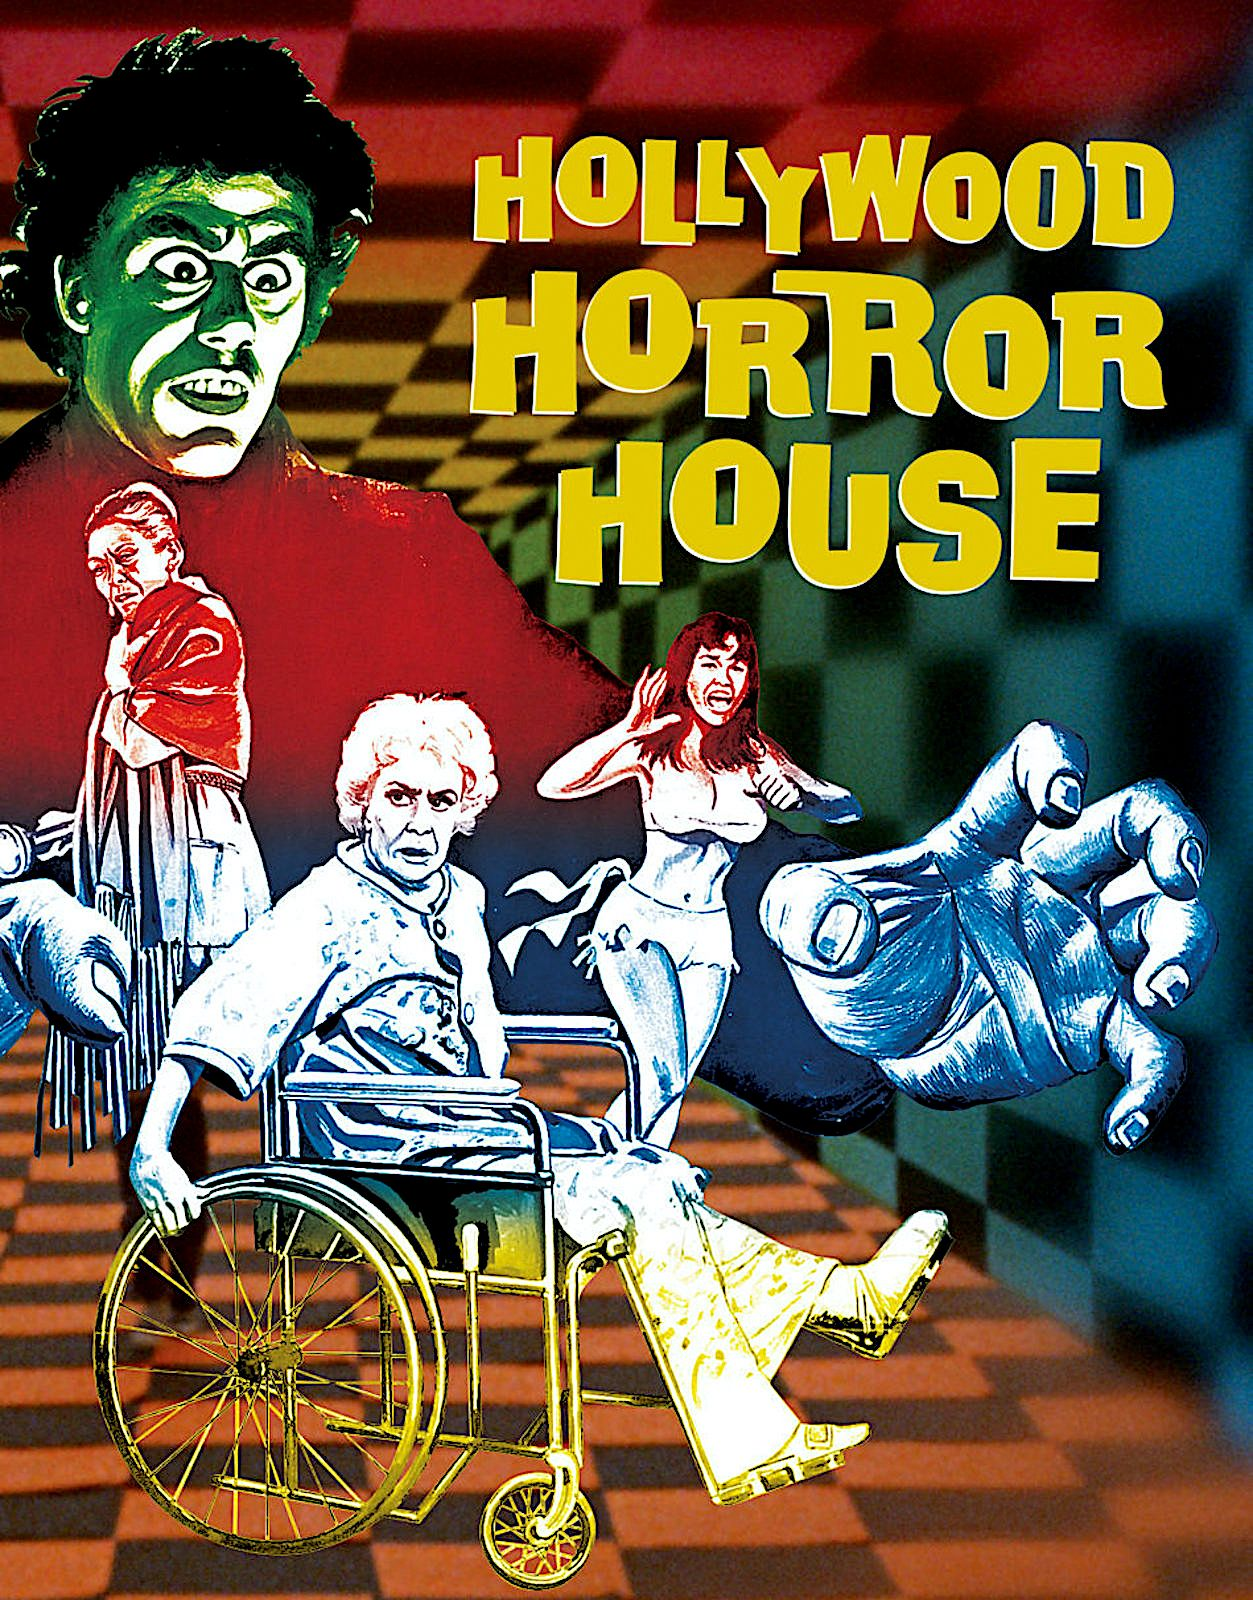 HOLLYWOOD HORROR HOUSE LIMITED EDITION BLURAY SLIPCOVER